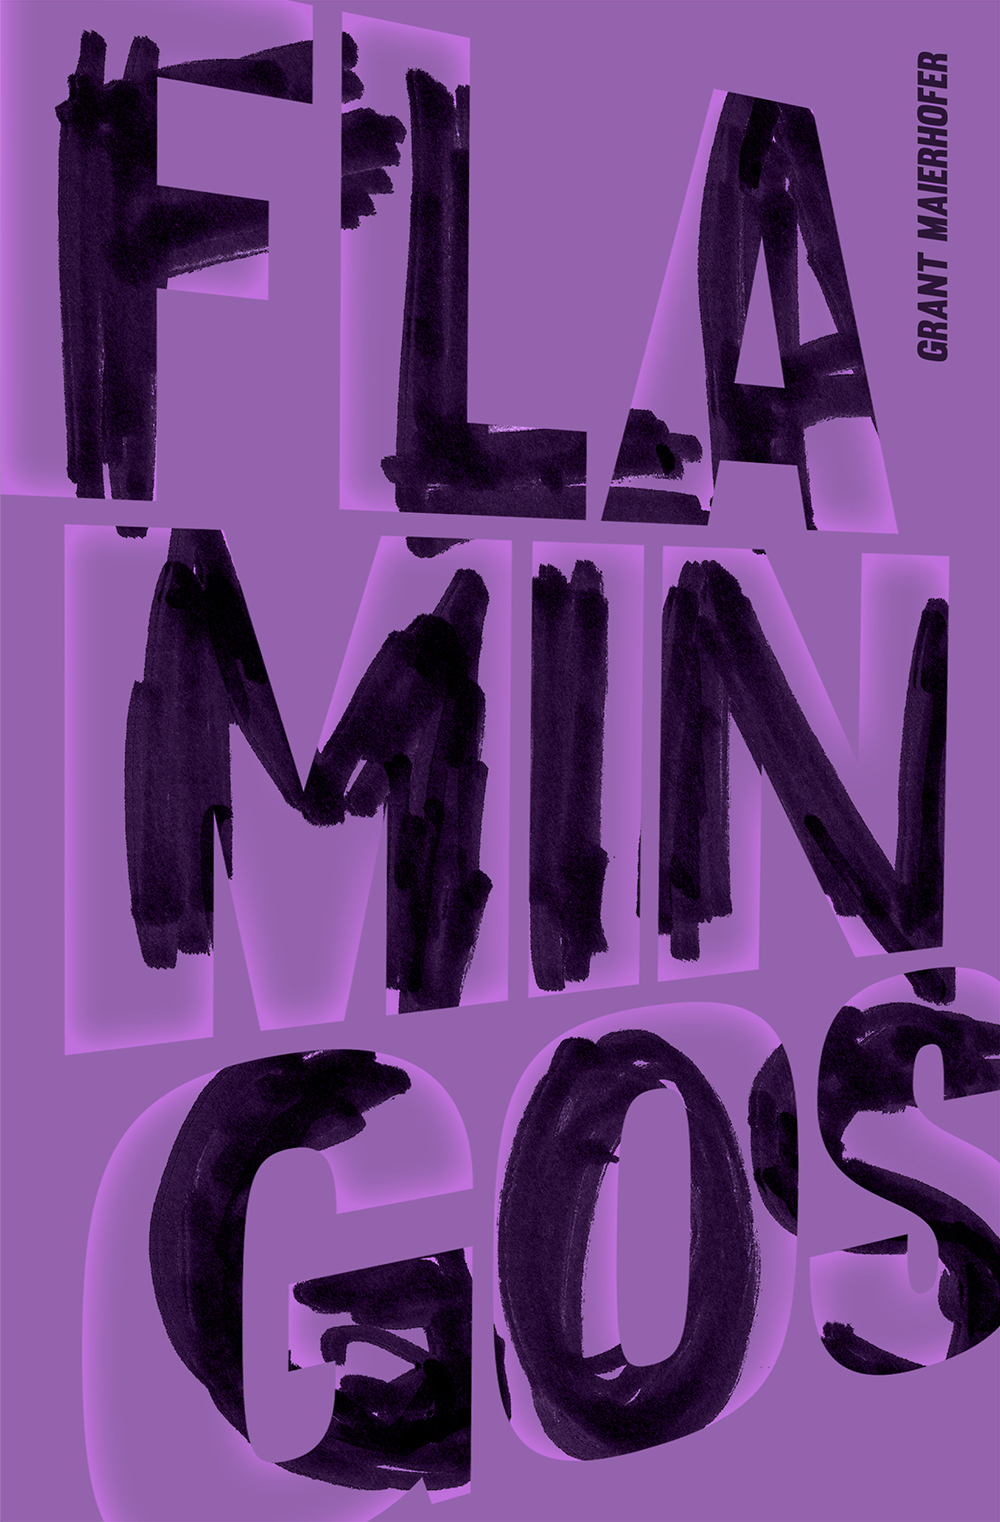 Mario Dzurila Flamingos Book Cover AIGA 50 Books 50 Covers 2016 Grant Maierhofer